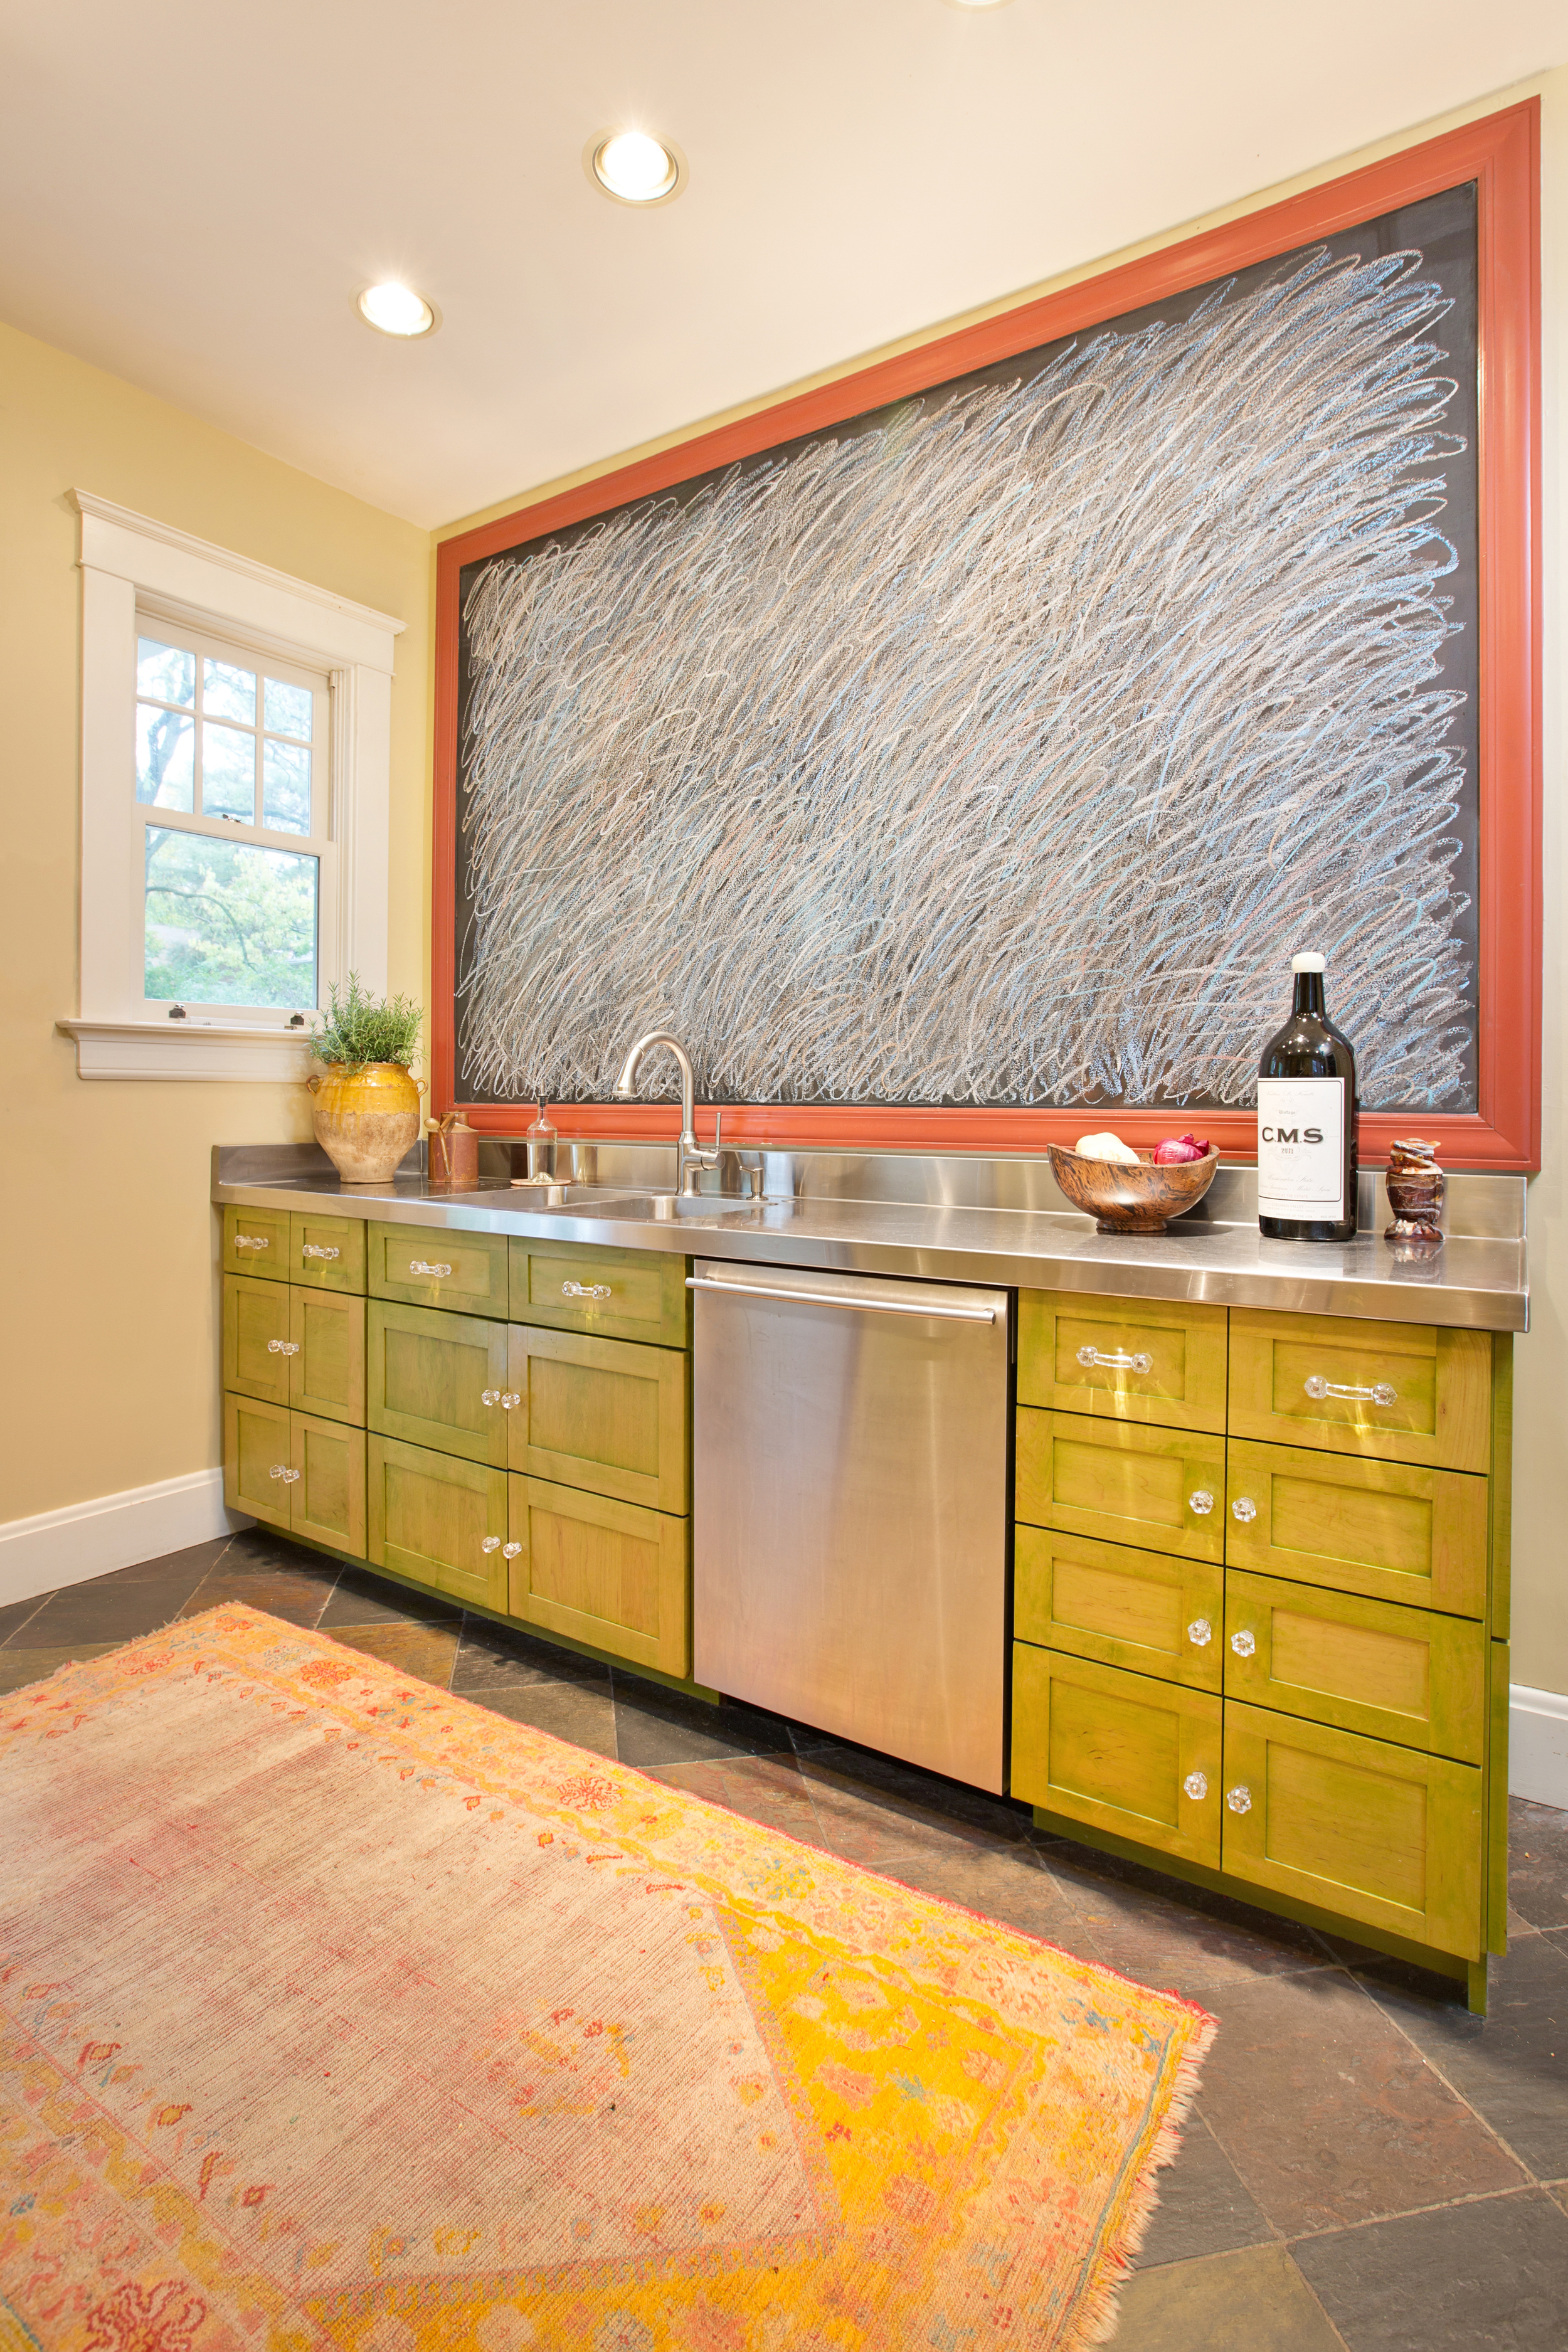 This could have been an unremarkable galley kitchen. Not only did we make it uber-functional (little is the new big) but we added spice by staining the cabinets chartreuse and installing 12x5 chalkboard (yes, that's a chalkboard) which this homeowner uses to channel her inner Cy Twombley.